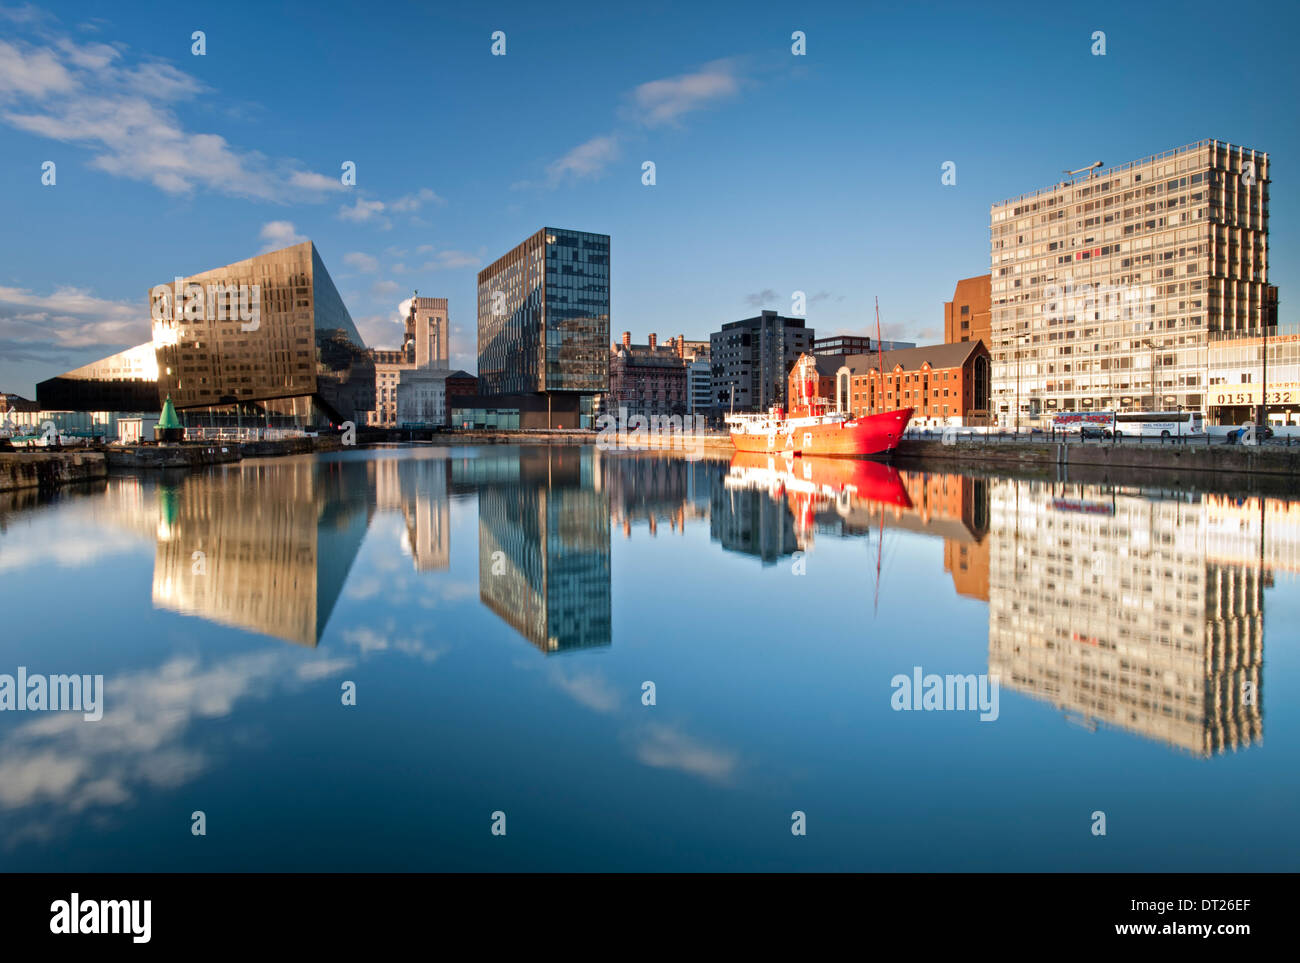 Modern Apartments, The Mersey Bar Lightship & Waterfront Buildings, Canning Dock, Liverpool, Merseyside, England, - Stock Image